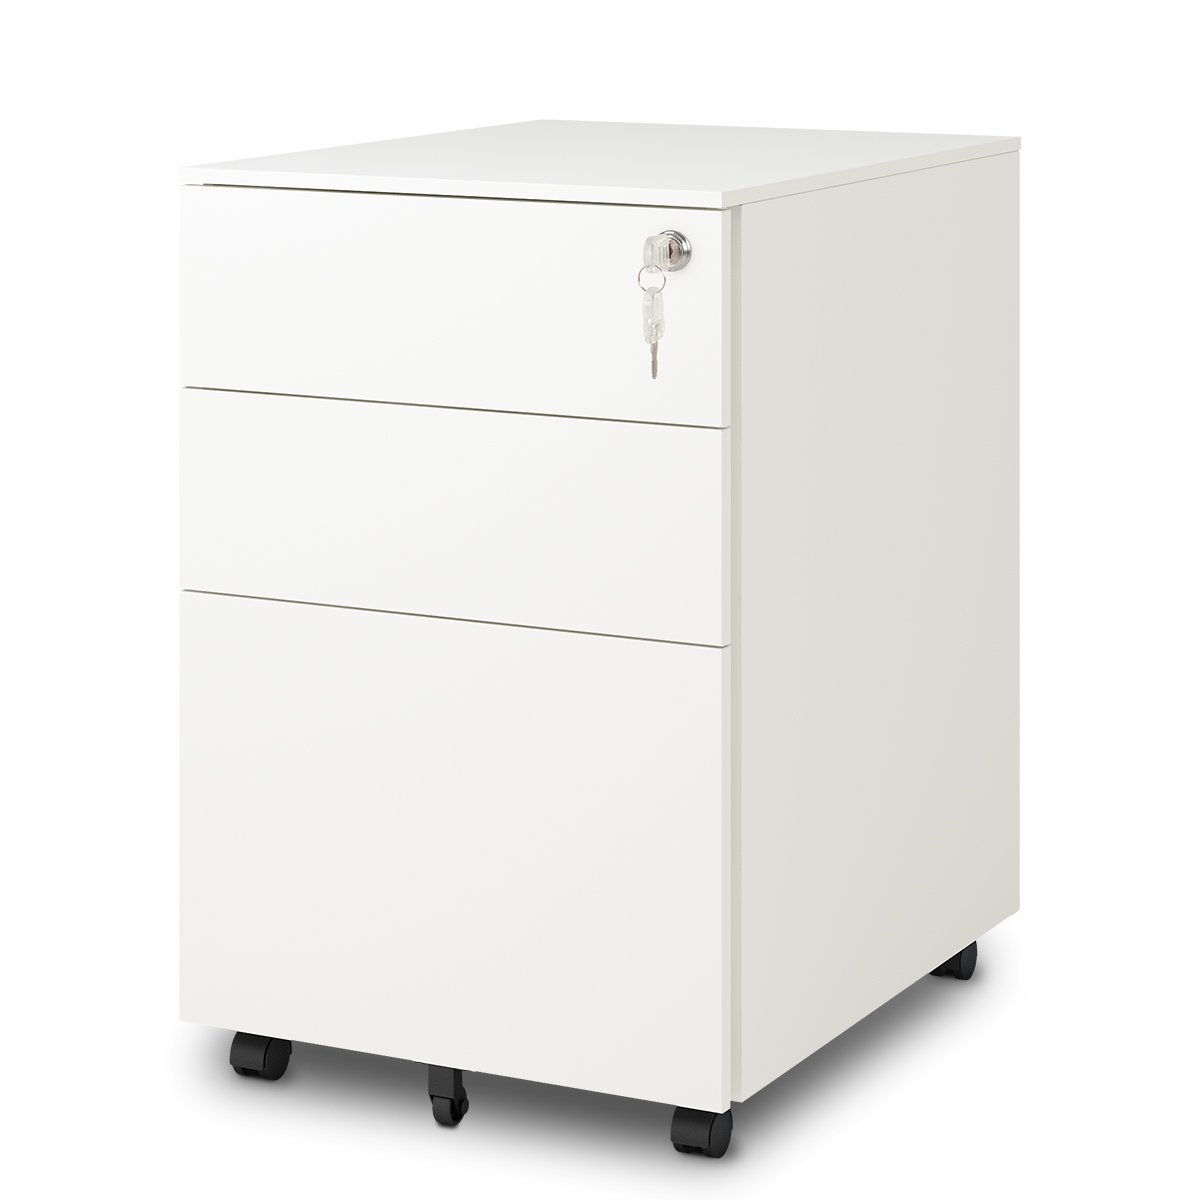 DEVAISE 3 Drawer Mobile File Cabinet with Lock, Mobile Pedestal Cabinet in White